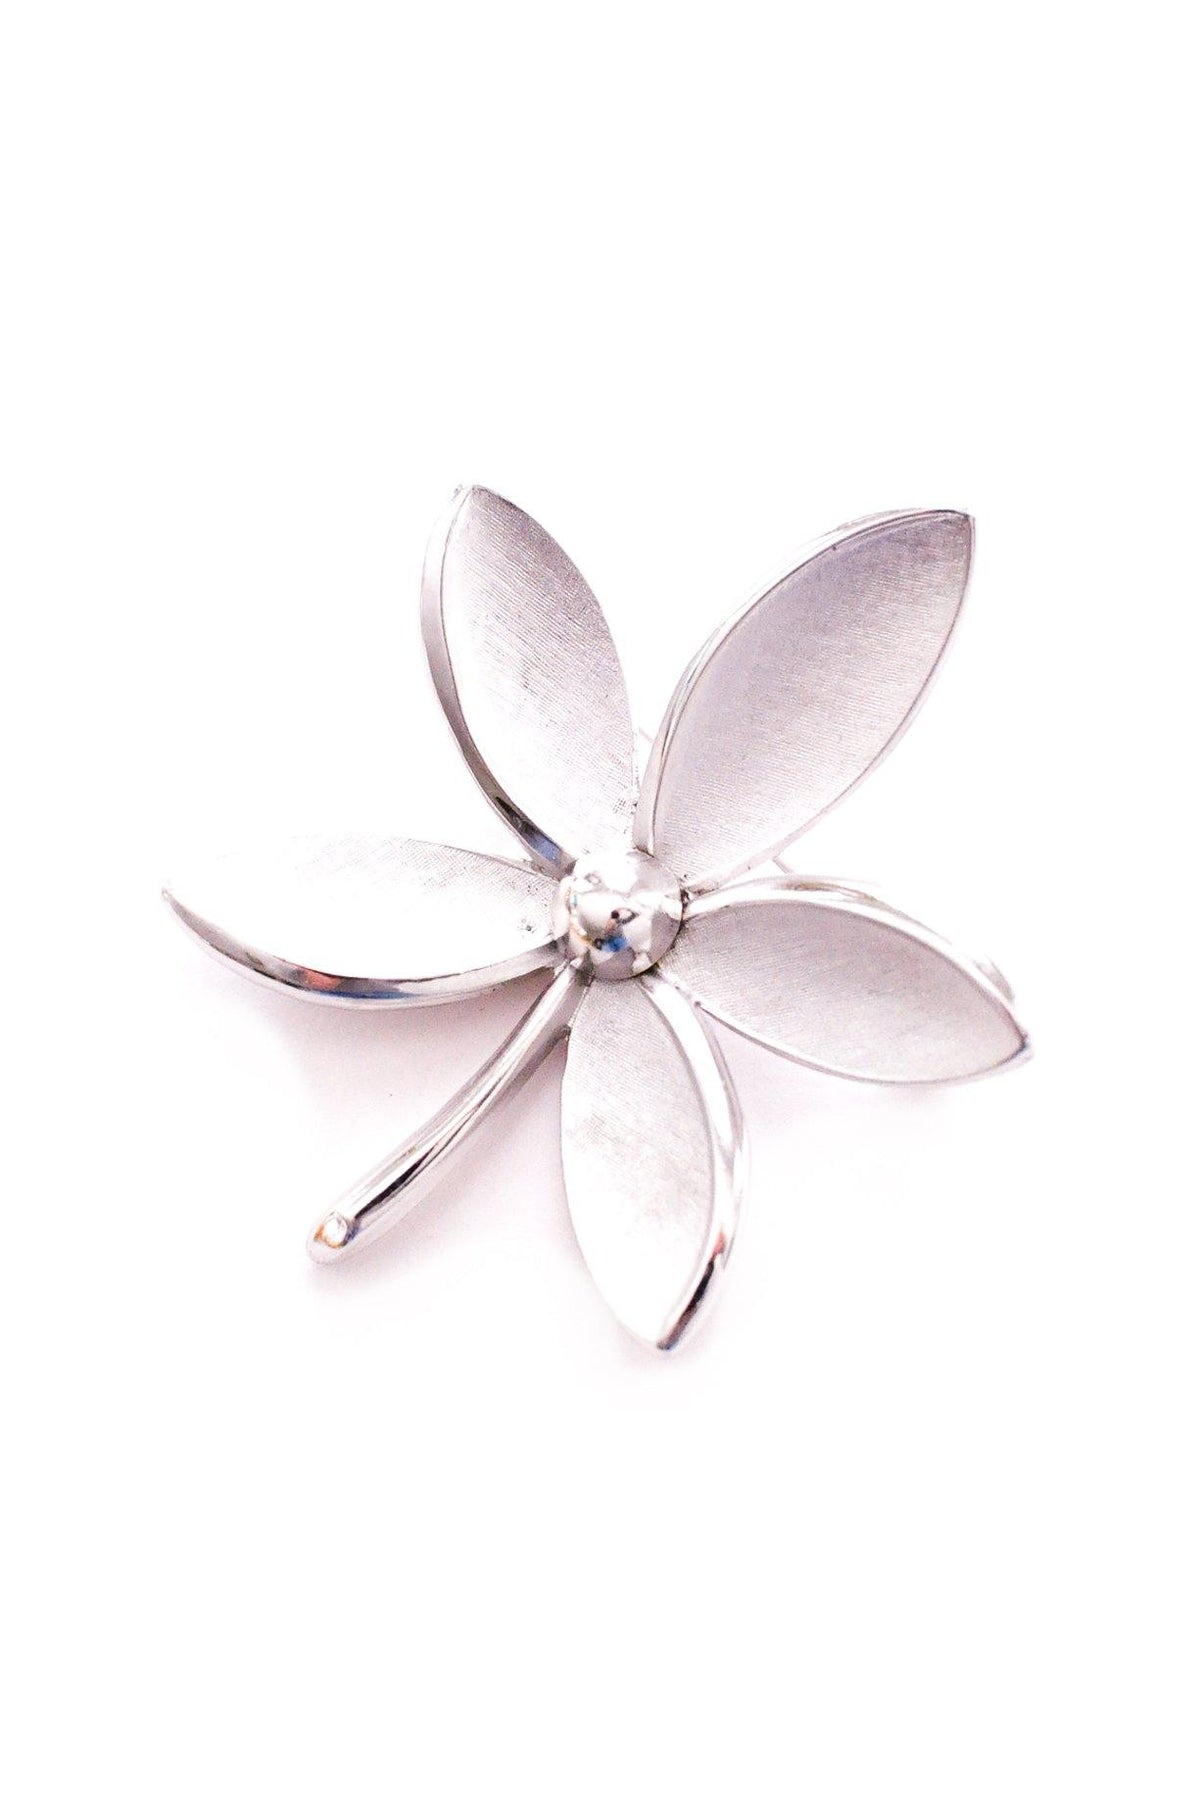 Vintage Trifari silver floral brooch from Sweet & Spark.